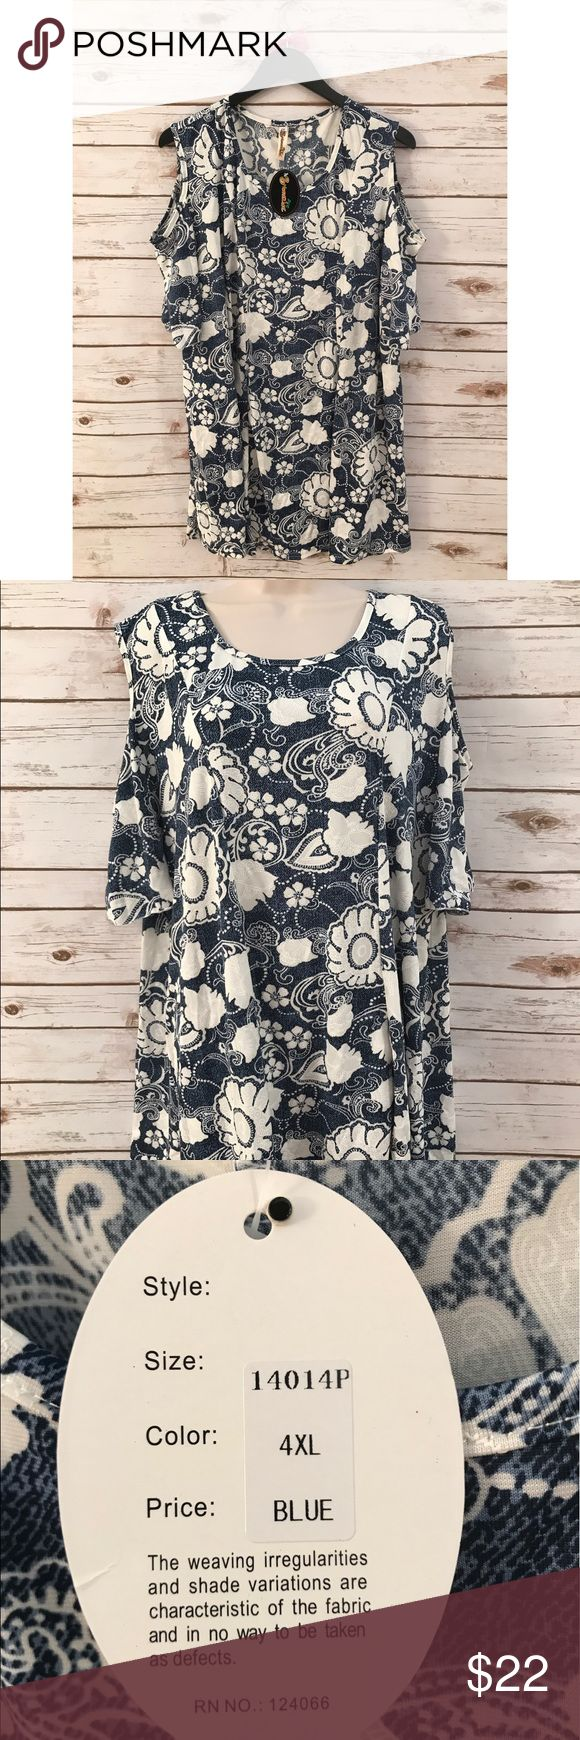 🎉NWT🎉 Shoreline Blue and White Plus Size Dress • Beautiful tropical shoreline NWT flowy dress. • Blue and white flower detailing.❣️ • Fast shipper & top rated seller⚡️ • Plus size 4XL. • No flaws. • Cutout shoulder detailing on sleeves. Shoreline Dresses Midi